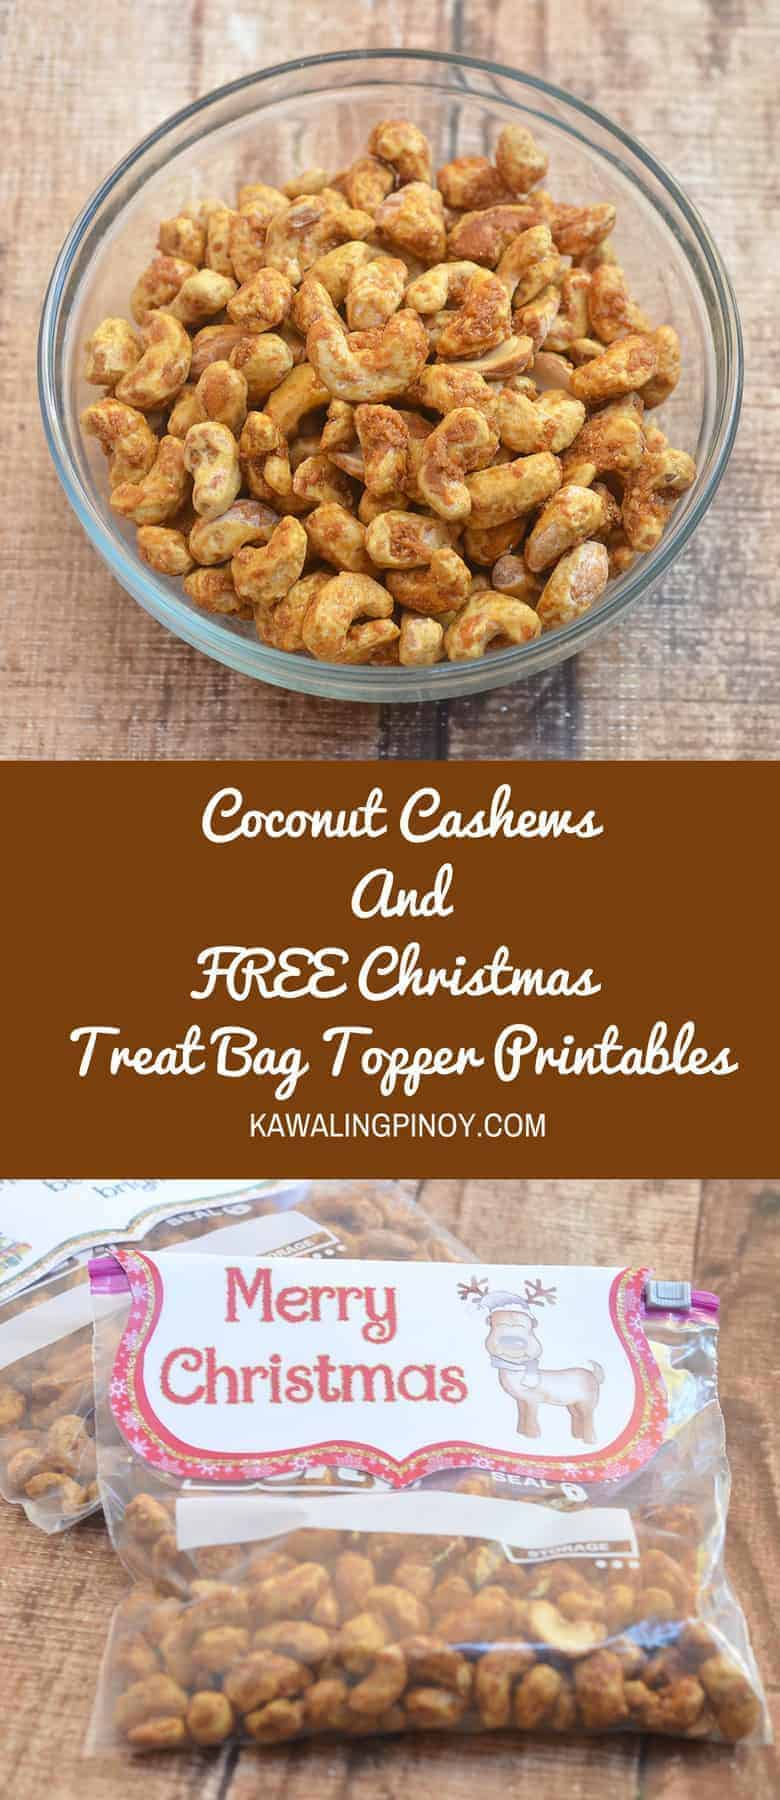 Coconut Cashews Plus FREE Christmas Treat Bag Toppers Printables